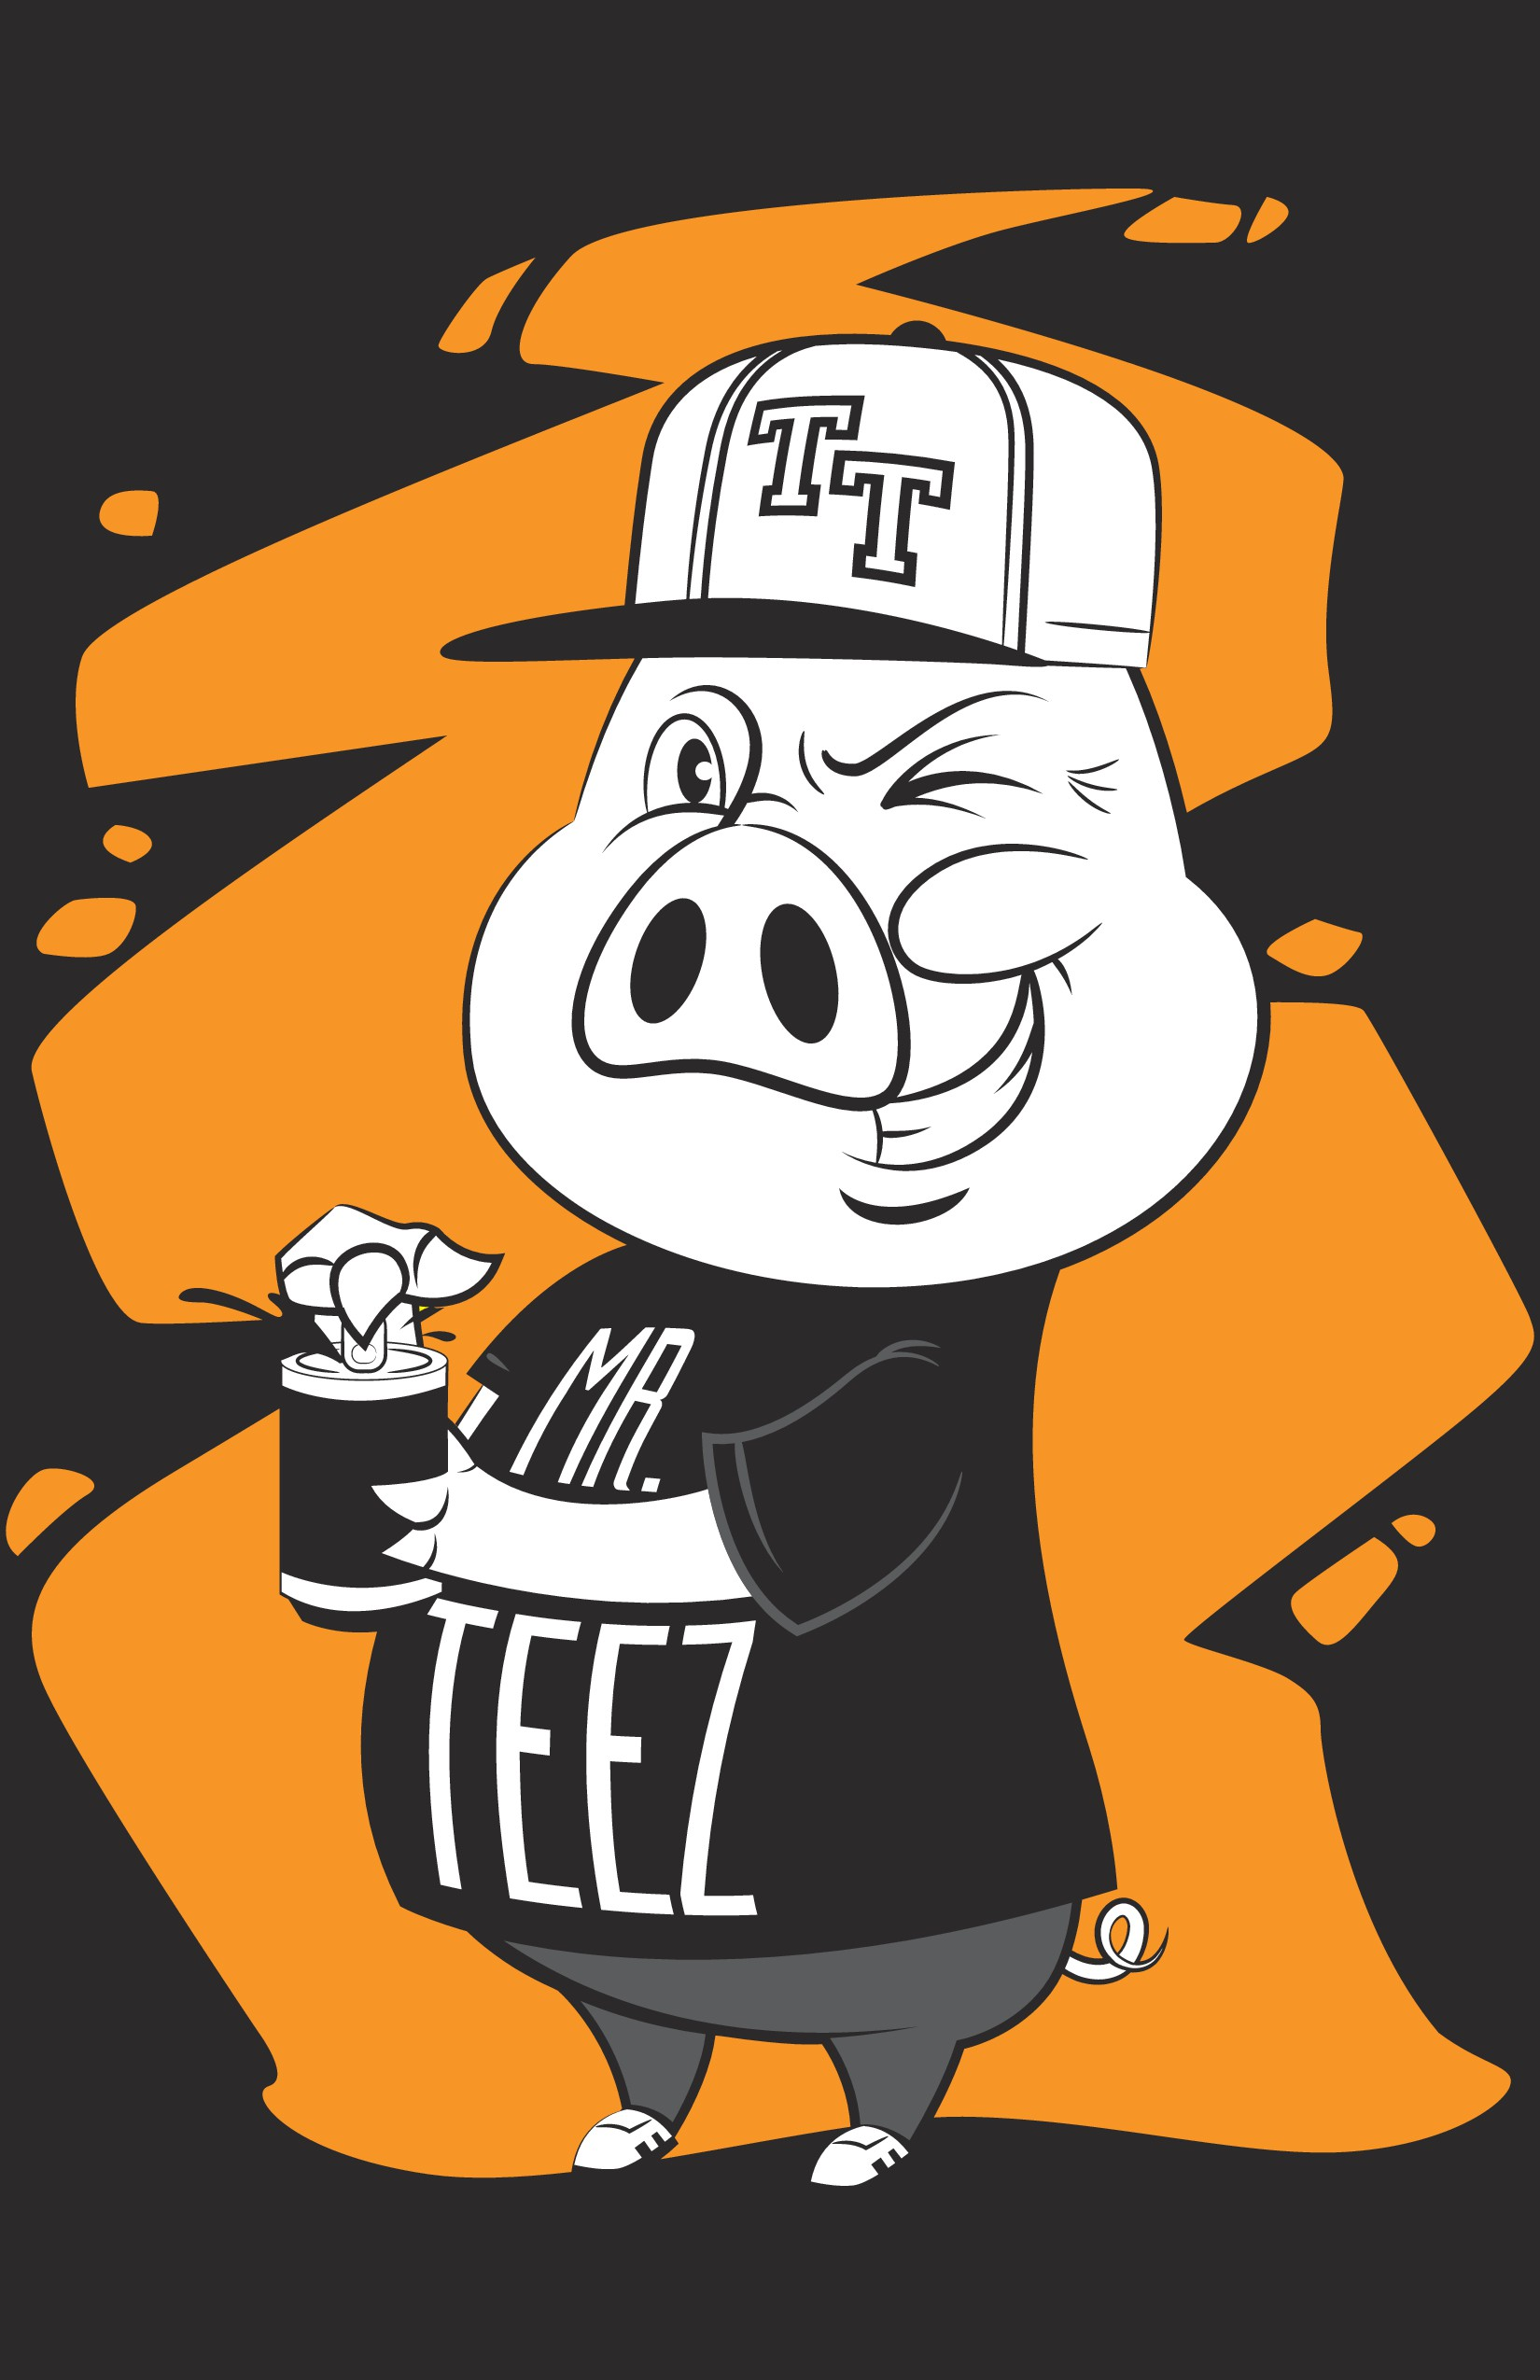 Teezerteez needs a character for its line  Playful and seductive